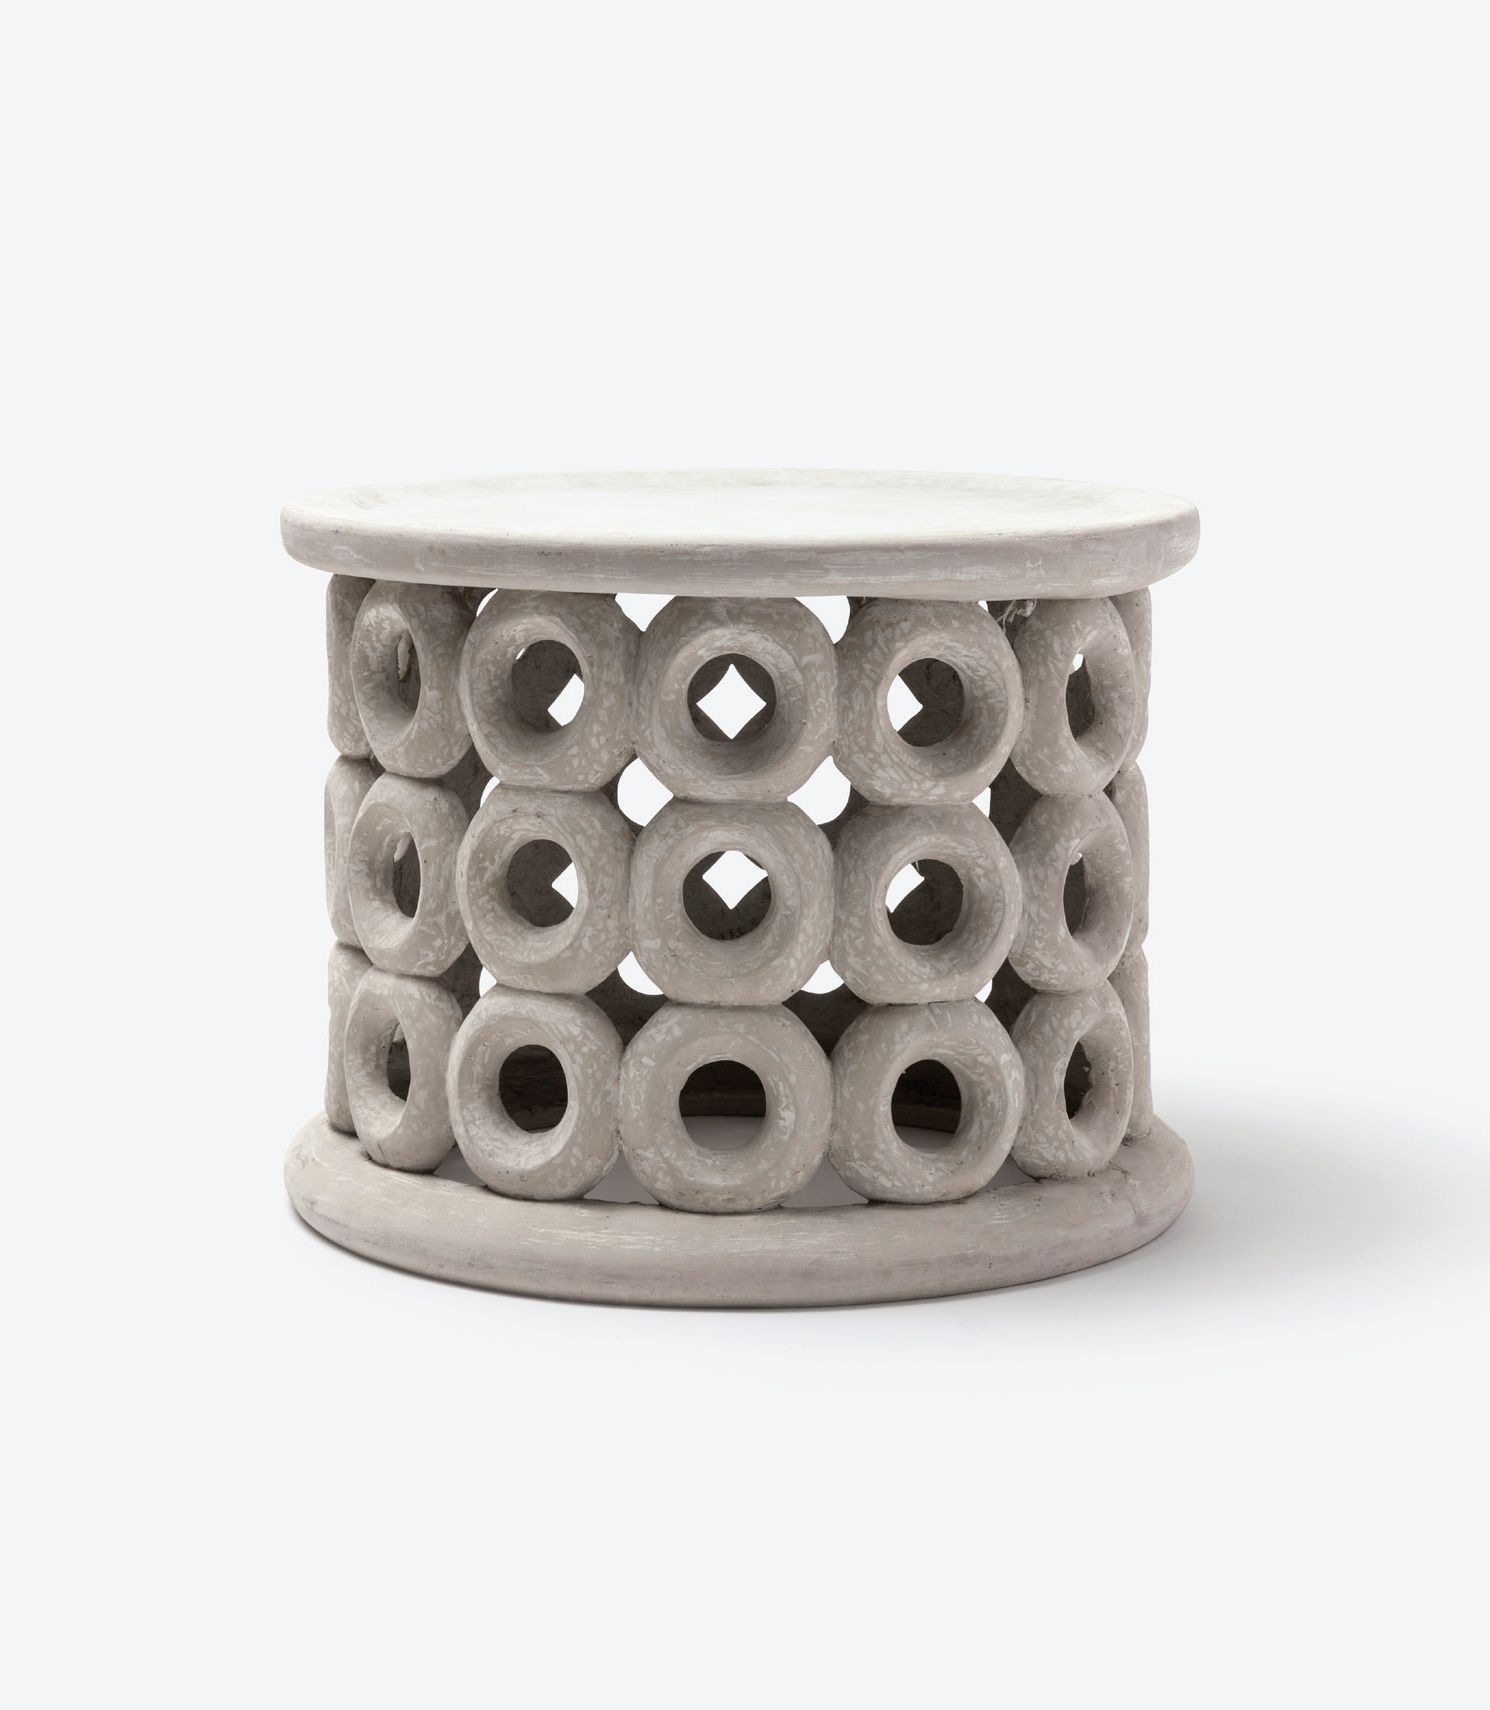 dohnet concrete outdoor side table mecox gardens fnst donut coffee base ideas ava furniture brass drum white and gold console pier one dining room tables natural wood accent bbq